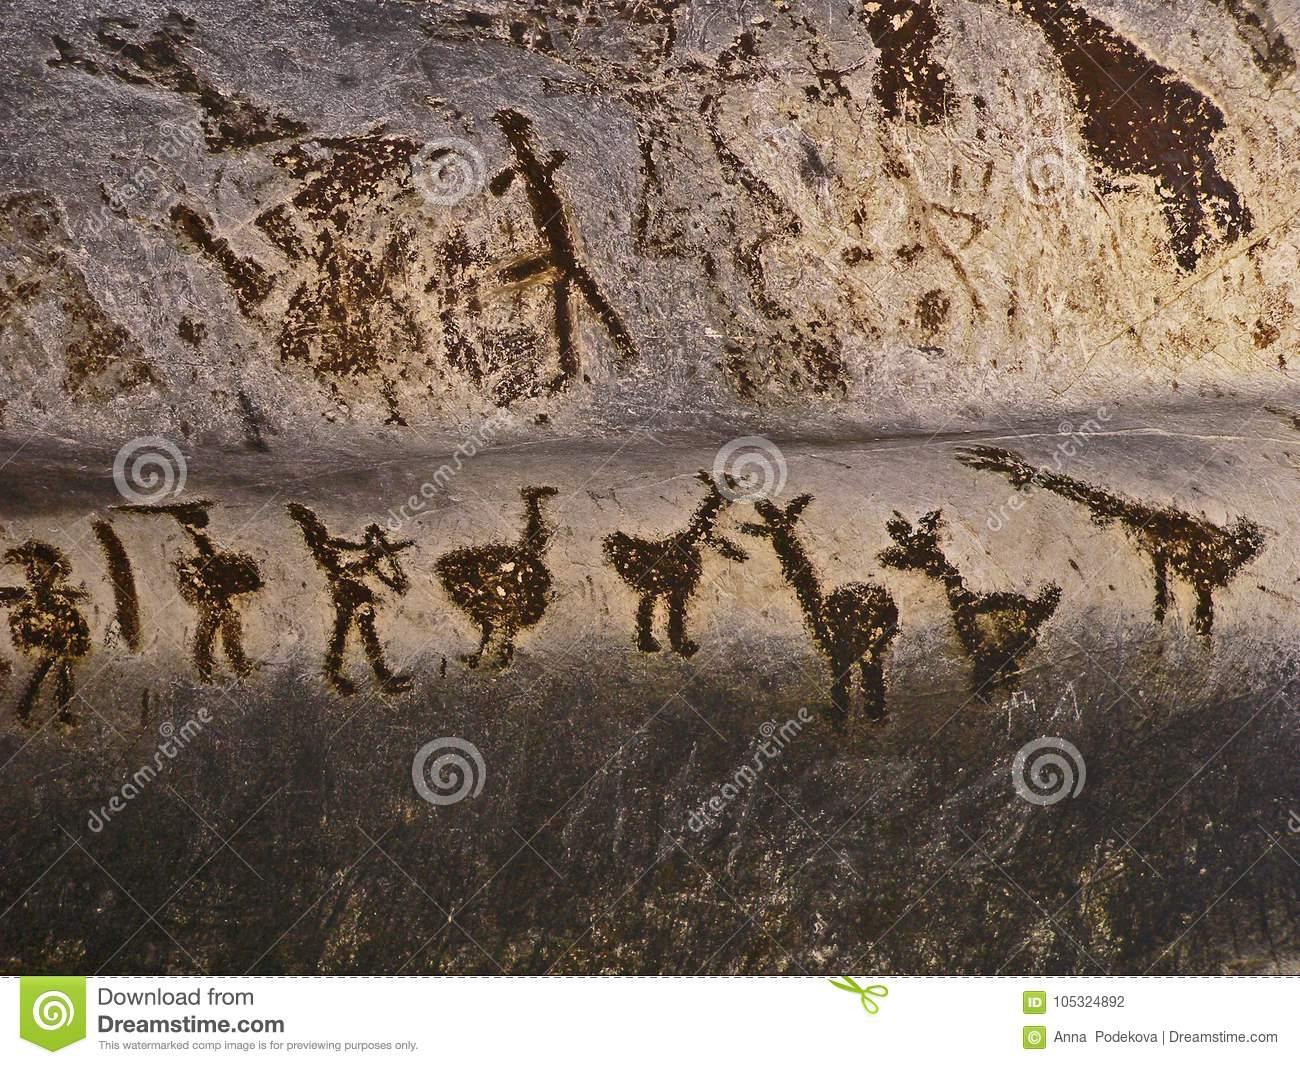 Magura Cave in Bulgaria. Prehistoric wall paintings drawings with bat guano.